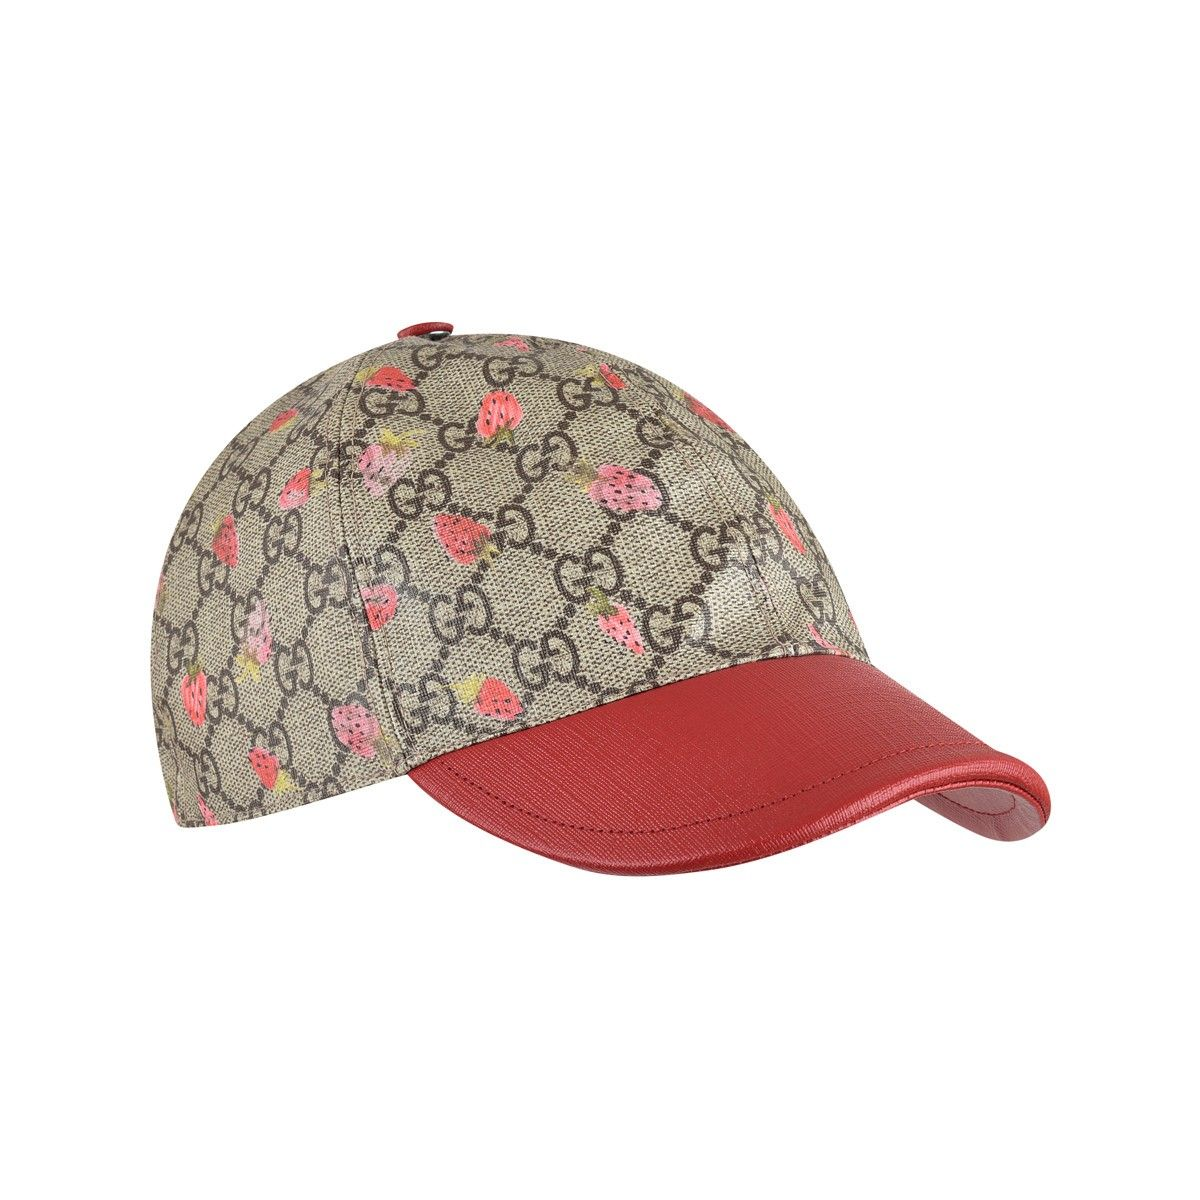 3f5b8ff6d GUCCI Girls Beige GG & Red Strawberry Cap   Baby Girls Outfits ...